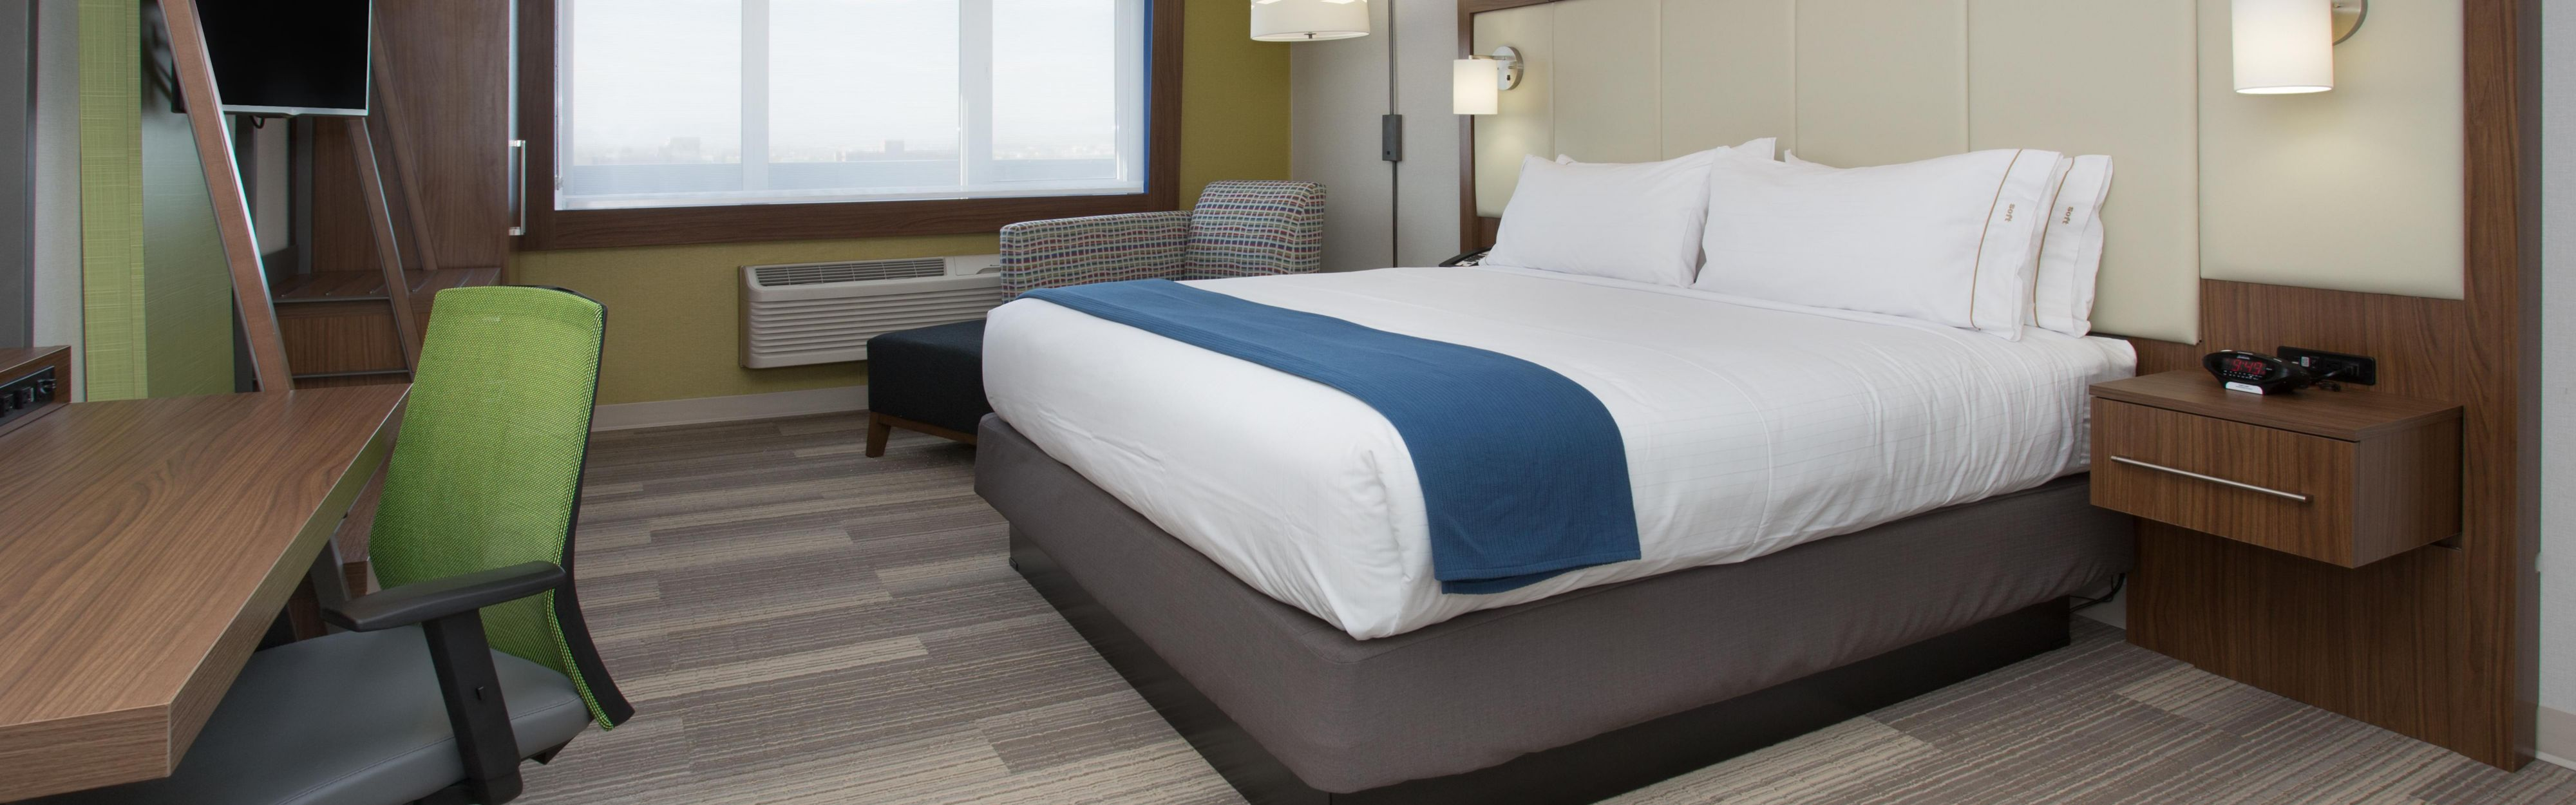 Holiday Inn Express & Suites Chicago North Shore - Niles image 1